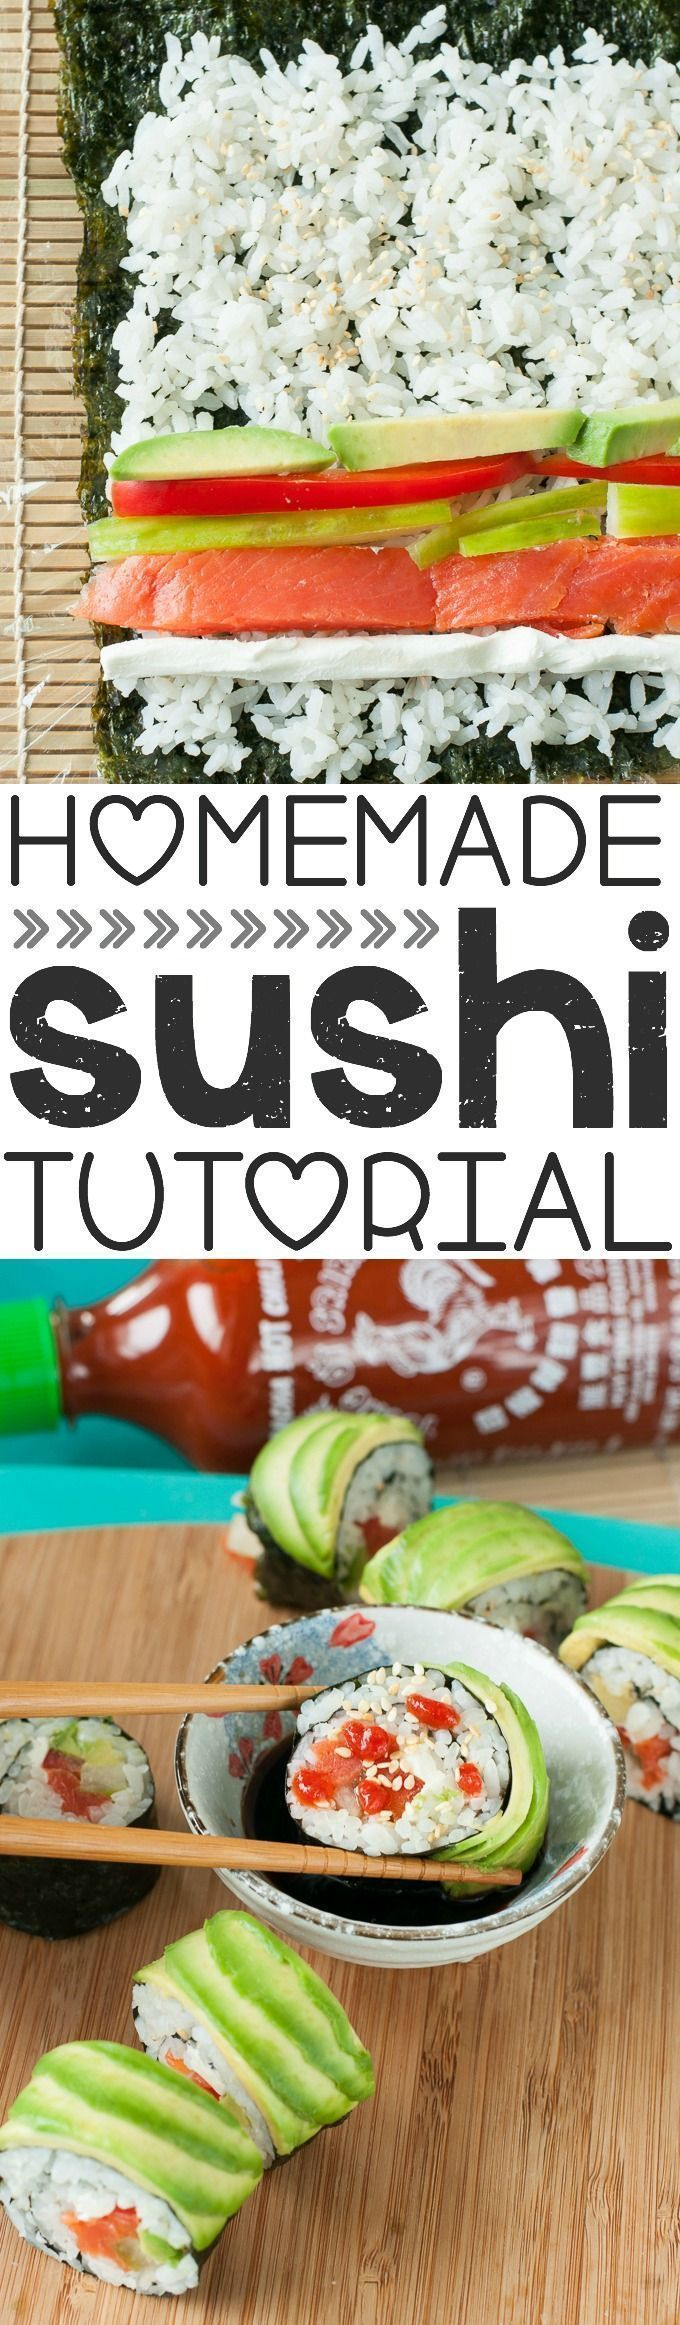 Homemade Sushi: Tips, Tricks, and Recipes for delicious at-home sushi rolls